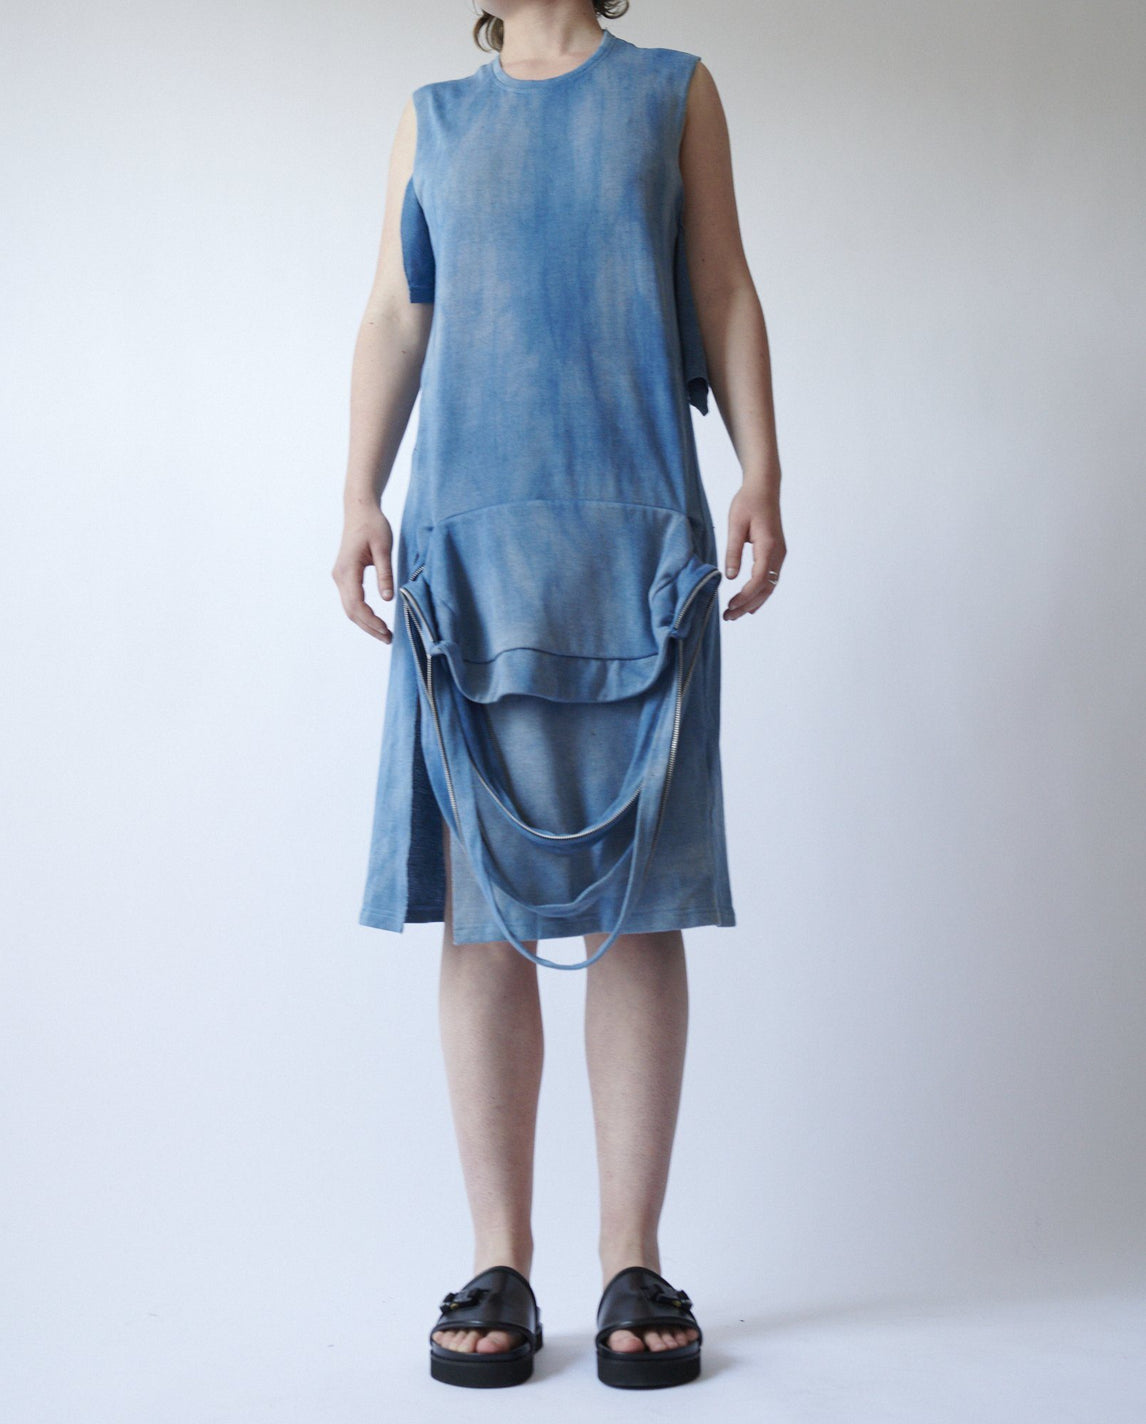 Indigo Dress - Indigo MENS PER GOTESSON